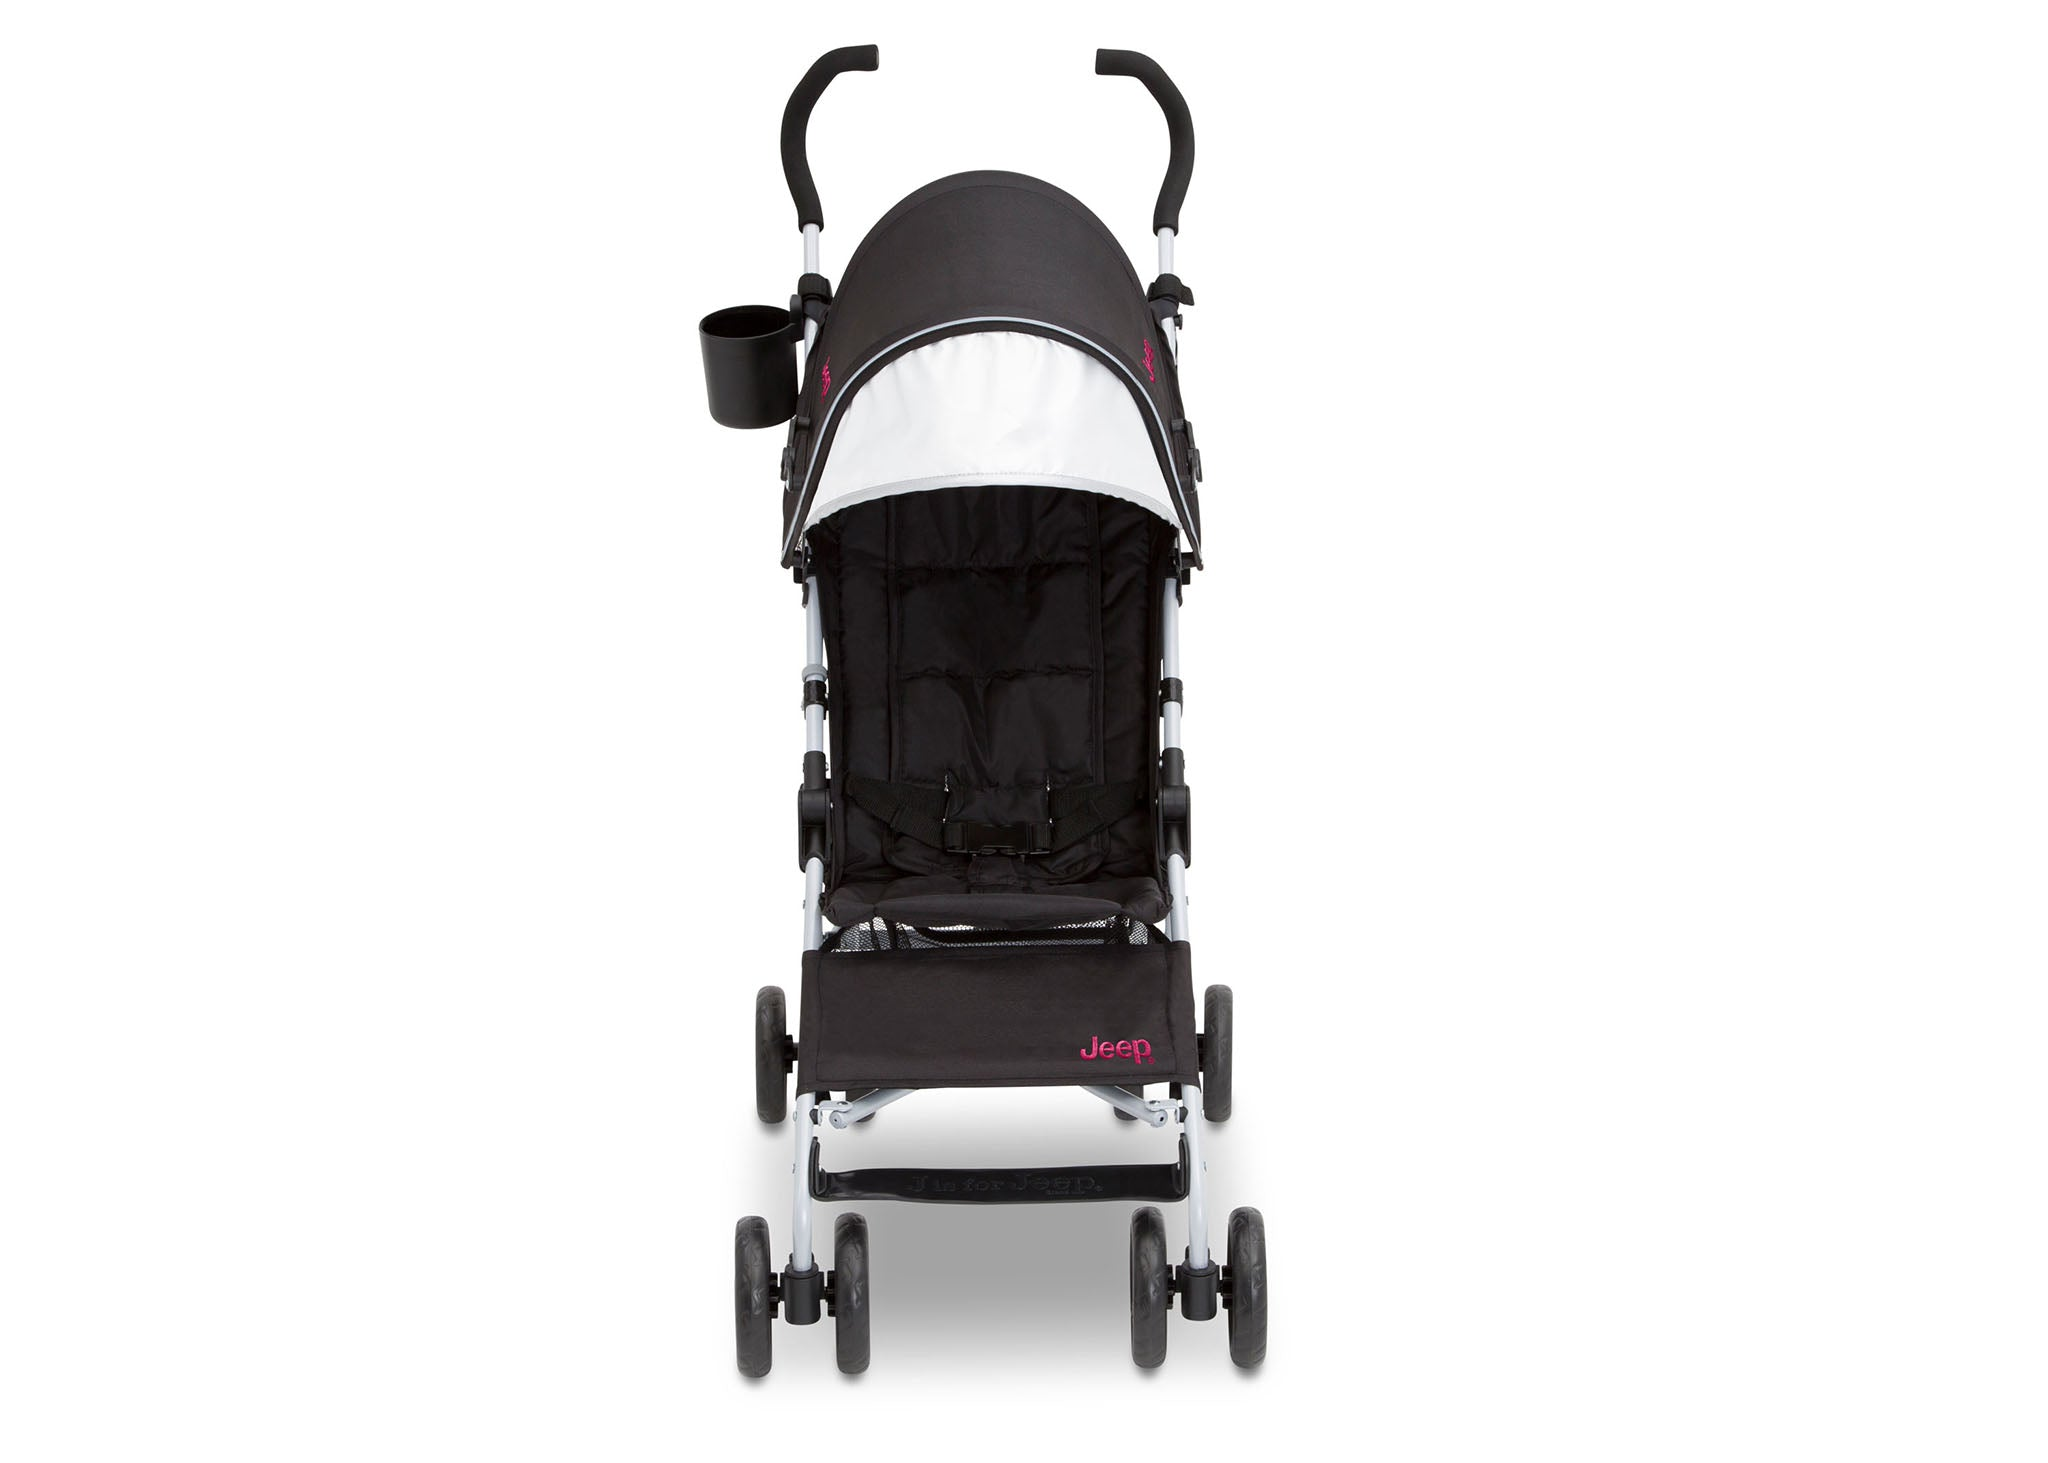 Jeep North Star Stroller by Delta Children, Black with Bright Burgundy (488), with extendable European-style canopy with sun visor